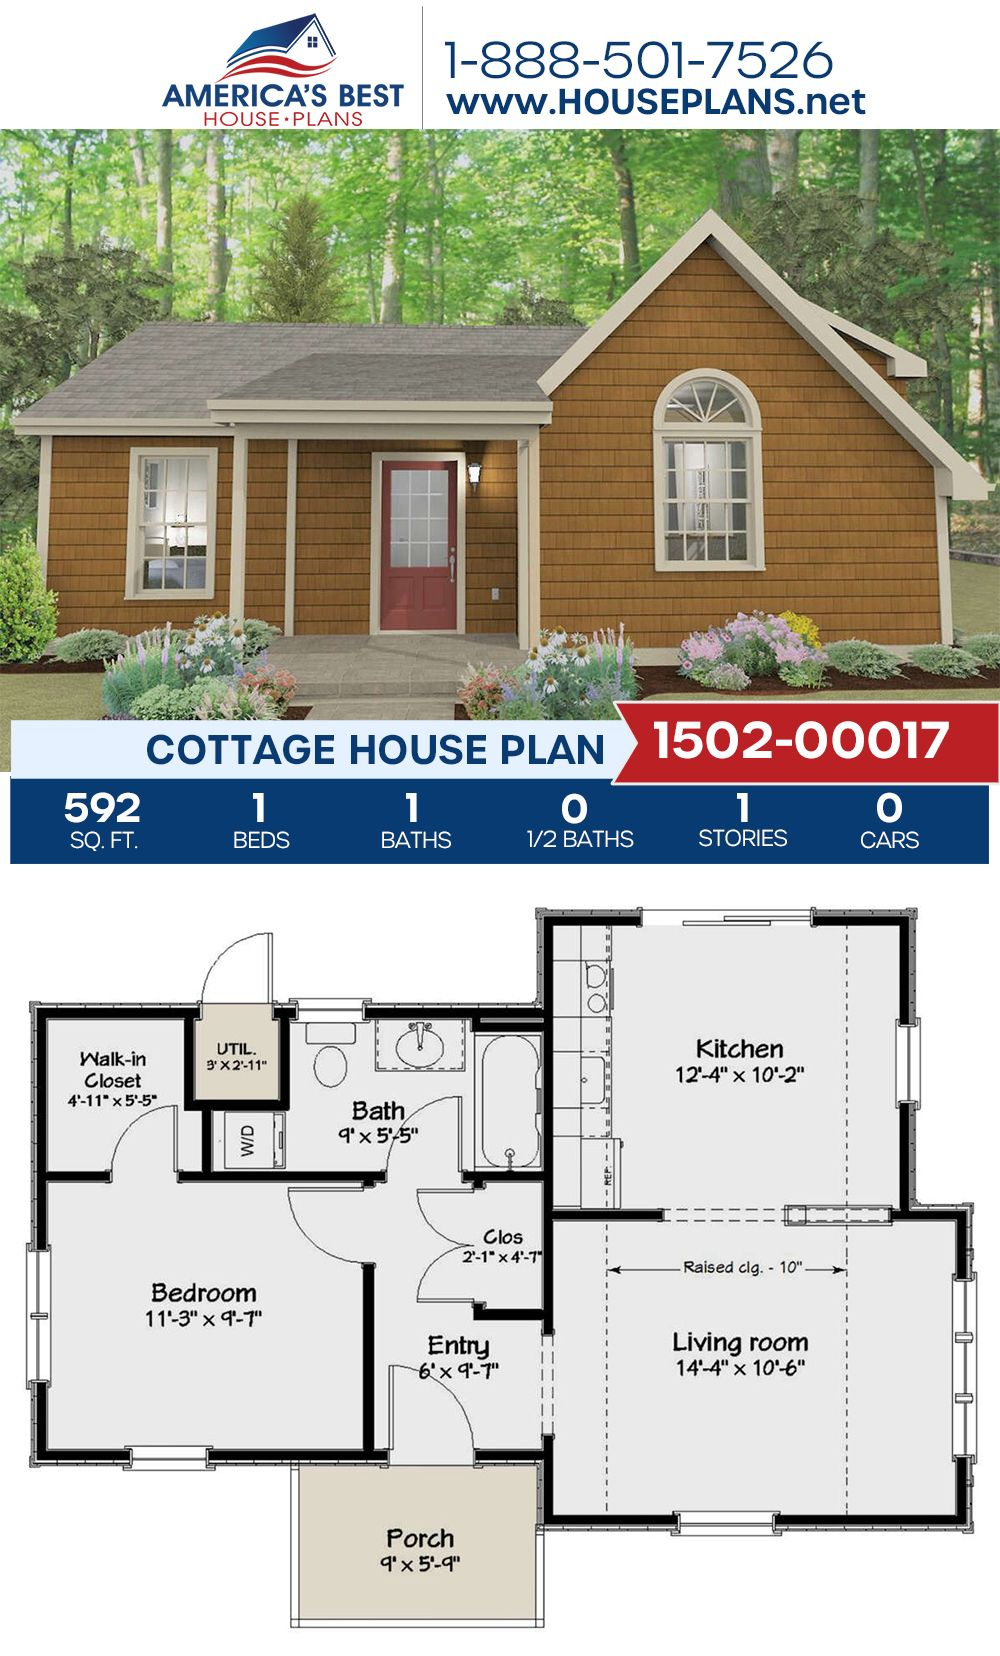 Complete with 592 sq. ft., Plan 1502-00017 details a Cottage home design with 1 bedroom, 1 bathroom, and an open floor plan. #cottagehouse #cottagehome #openfloorplan #architecture #houseplans #housedesign #homedesign #homedesigns #architecturalplans #newconstruction #floorplans #dreamhome #dreamhouseplans #abhouseplans #besthouseplans #newhome #newhouse #homesweethome #buildingahome #buildahome #residentialplans #residentialhome